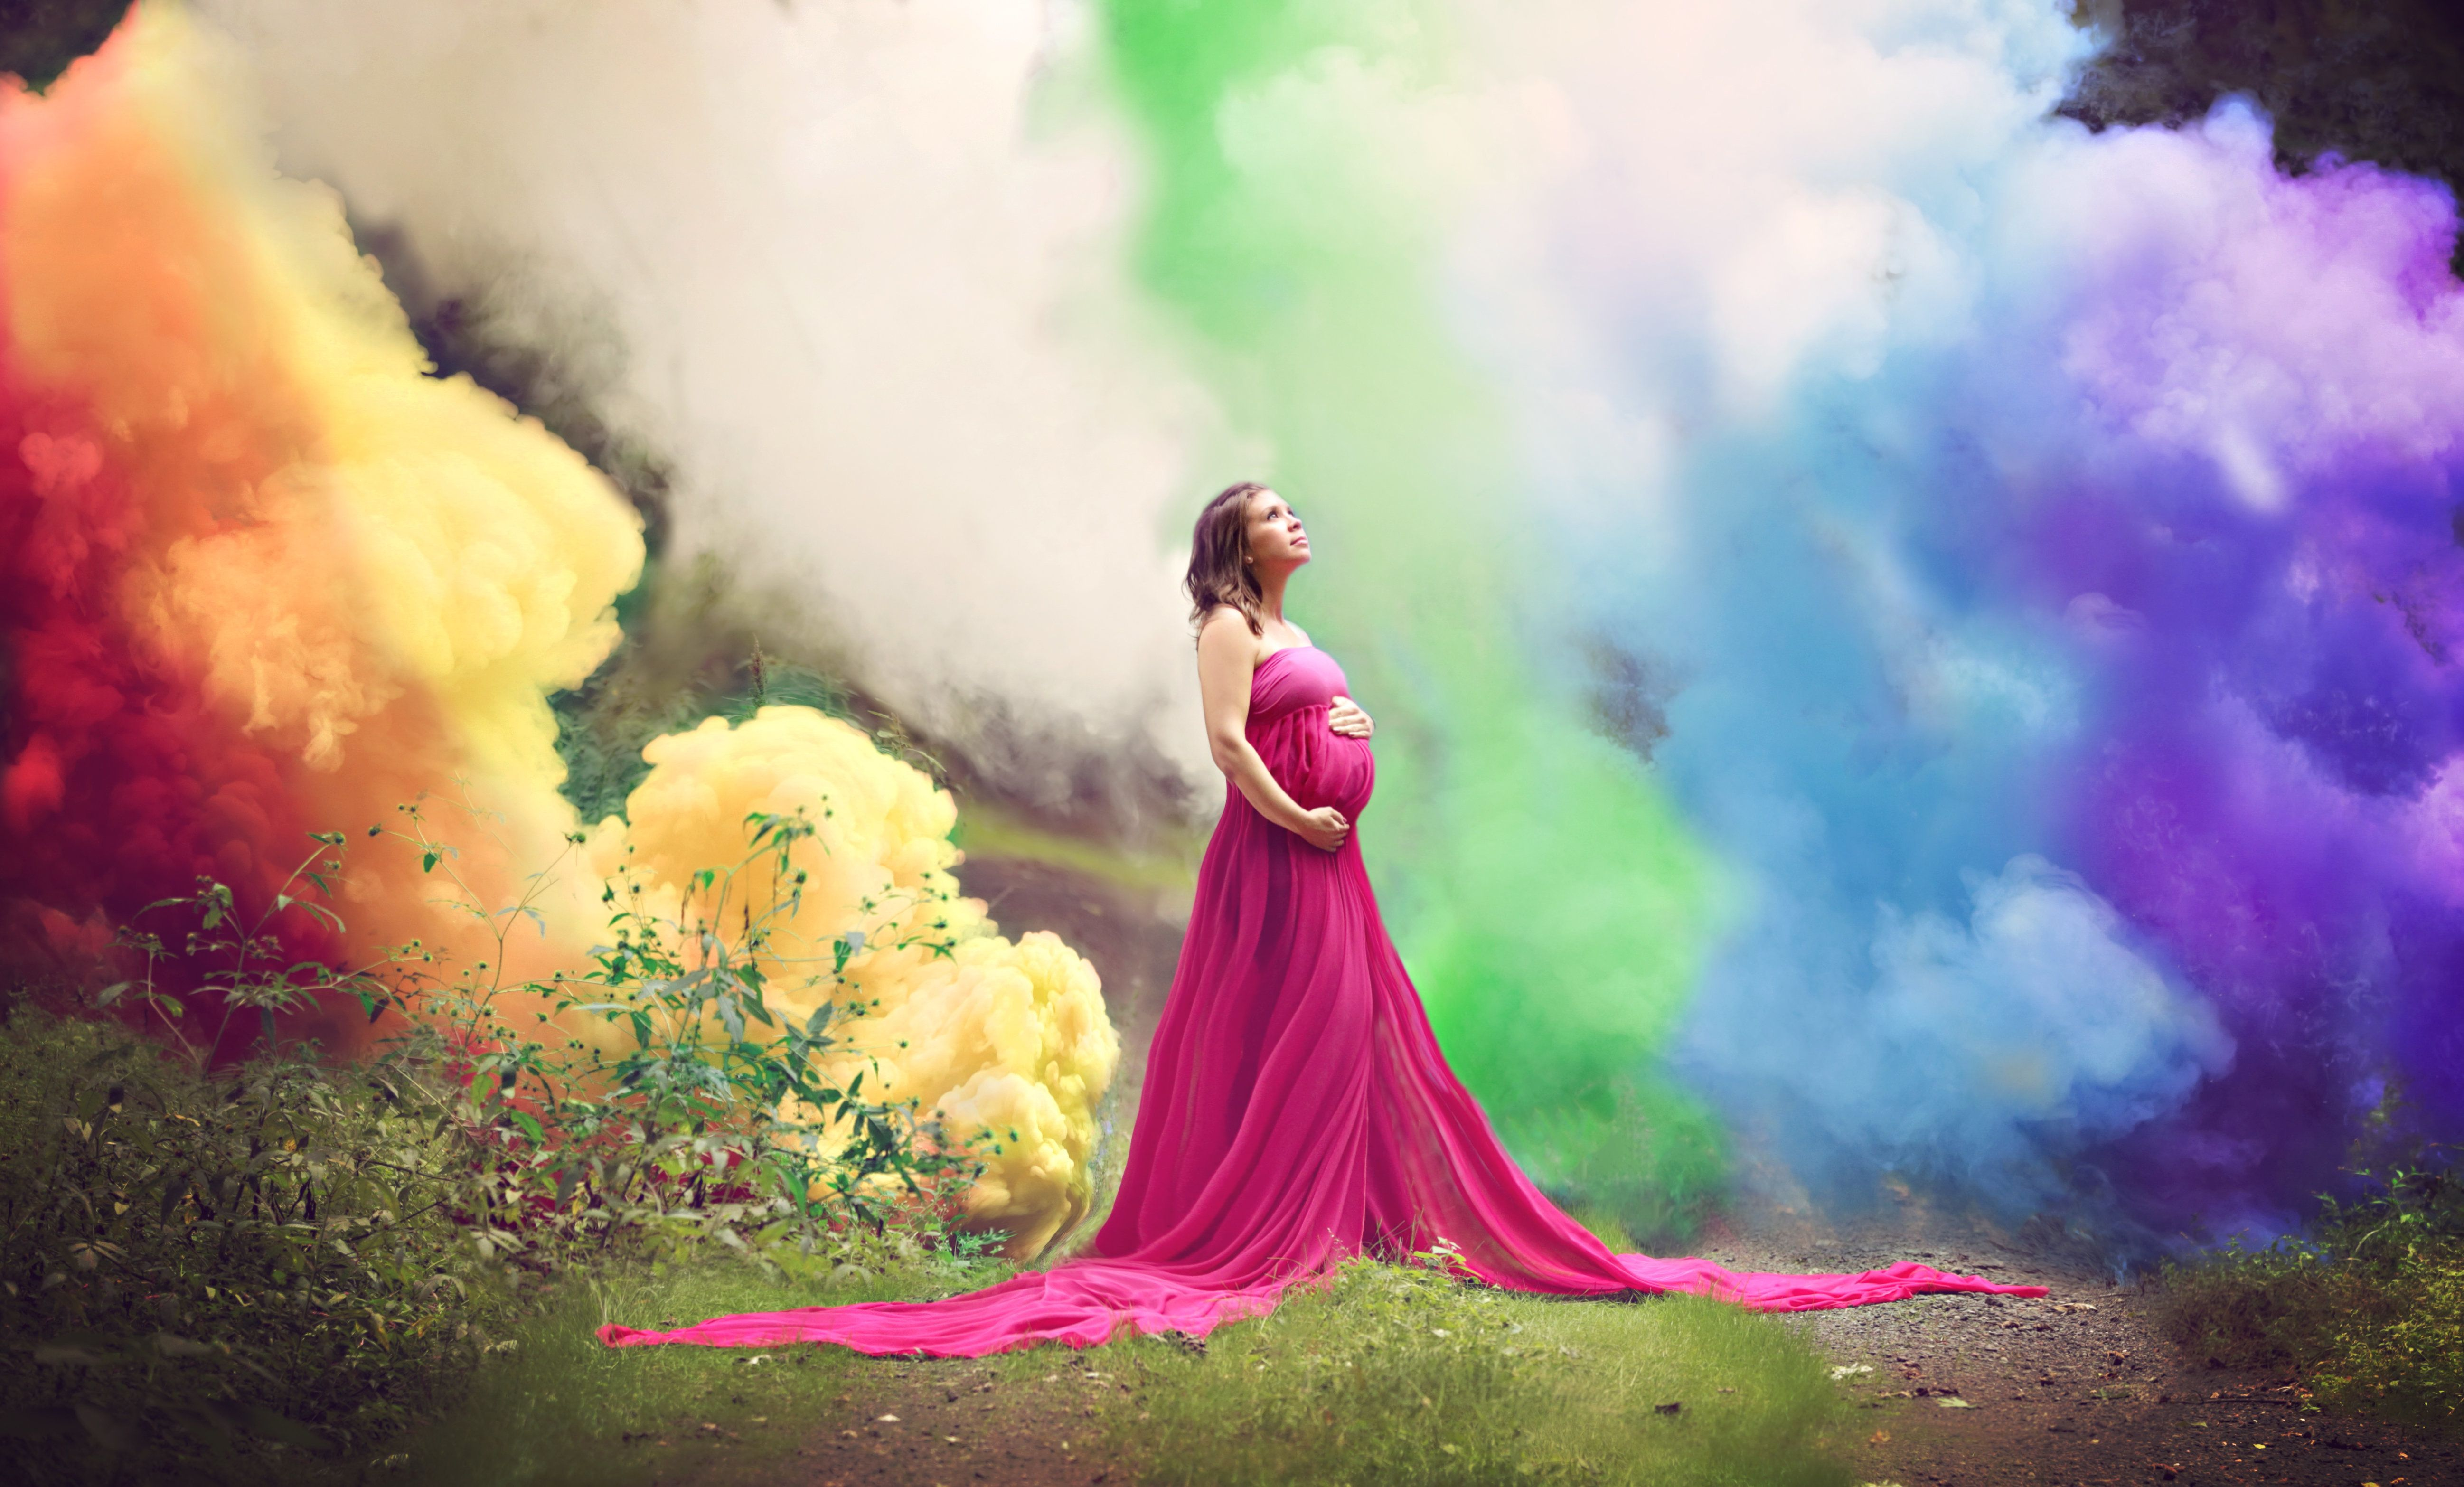 After 6 Miscarriages, Mum Celebrates Rainbow Baby With Breathtaking